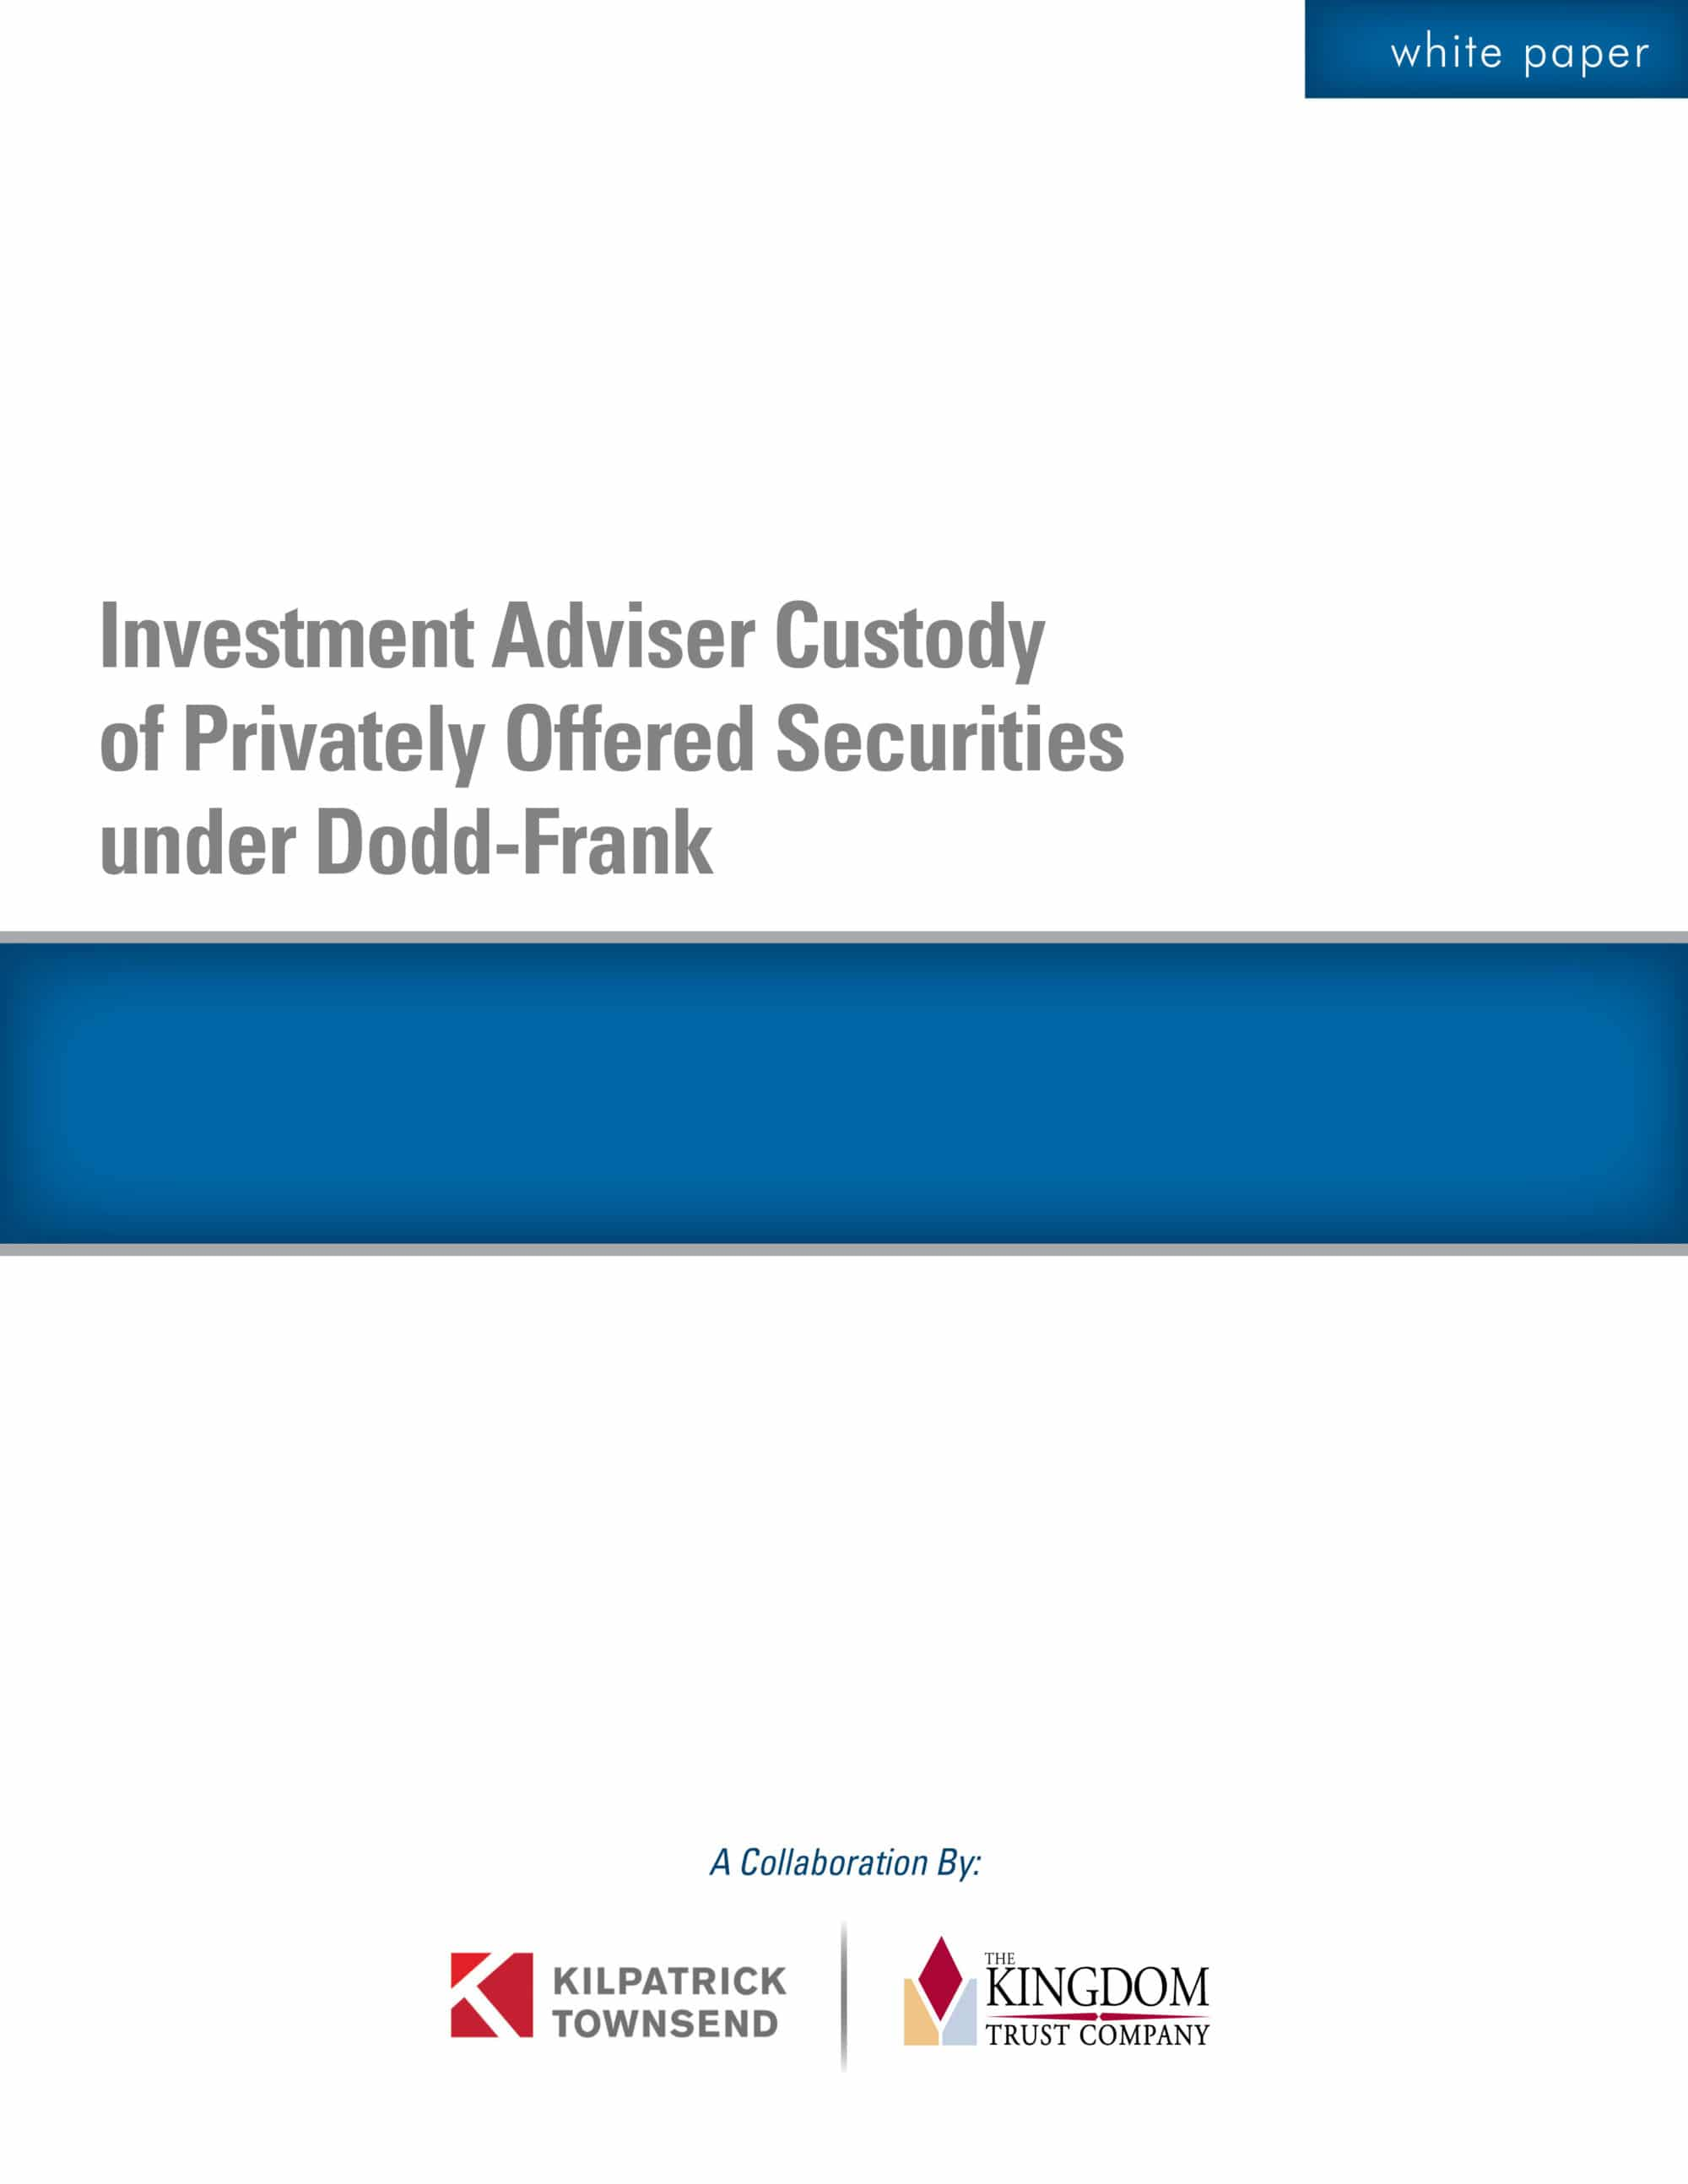 Custody Rule Under Dodd-Frank